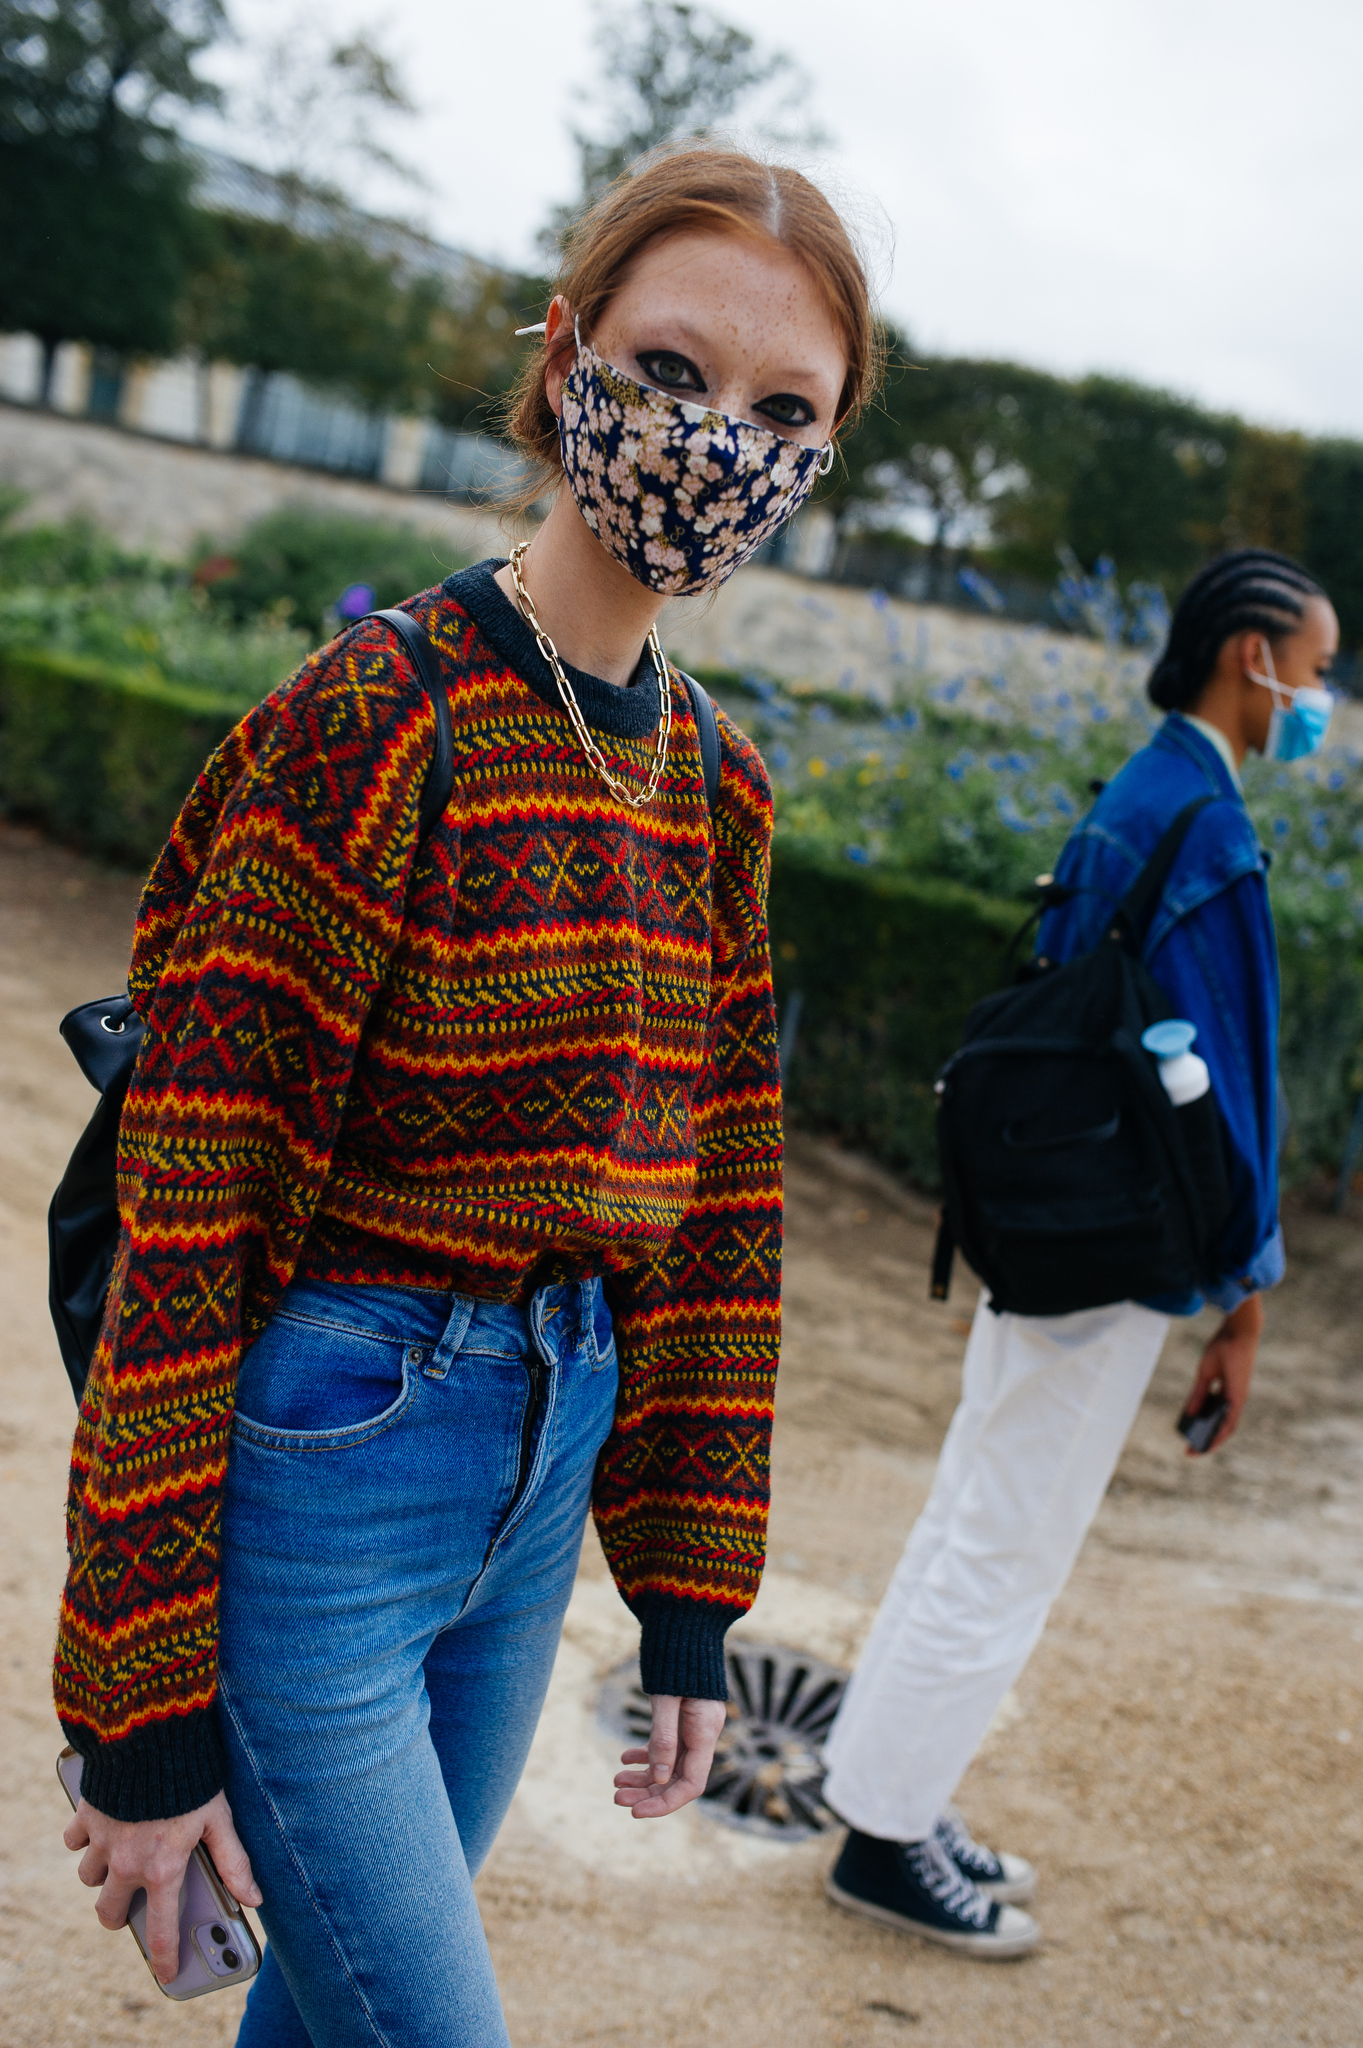 Street Style at Paris Fashion Week Ready to Wear Spring 2021, photographed in Paris on Sept 28 - Oct 6, 2020.